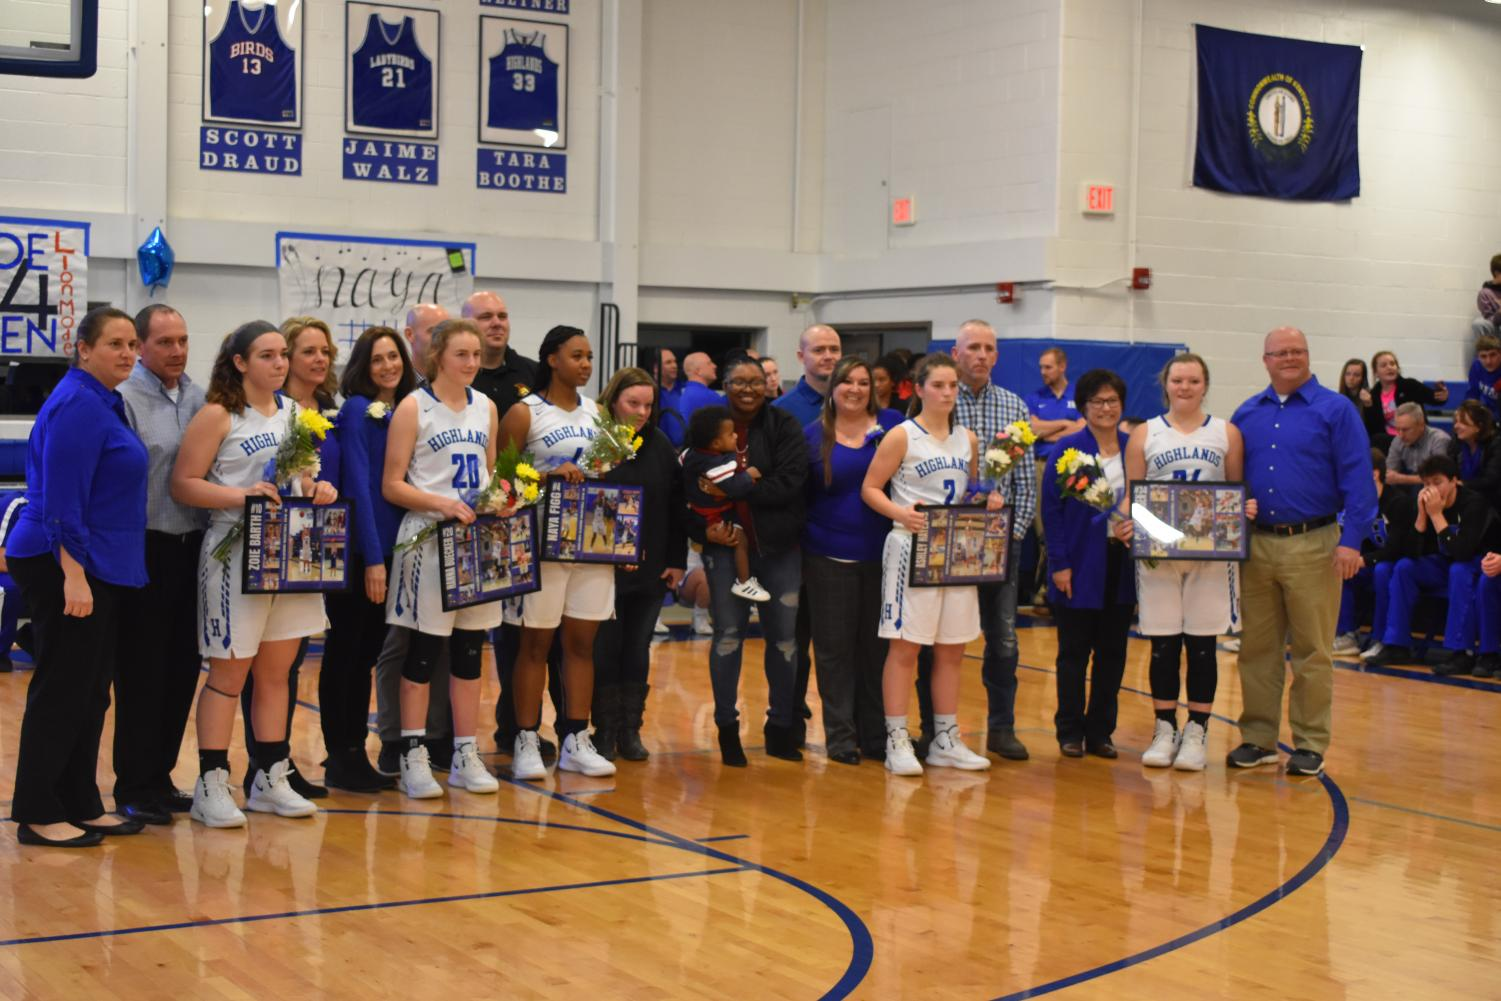 The seniors on the girls basketball team stand together to wrap up the last home game of their high school career.